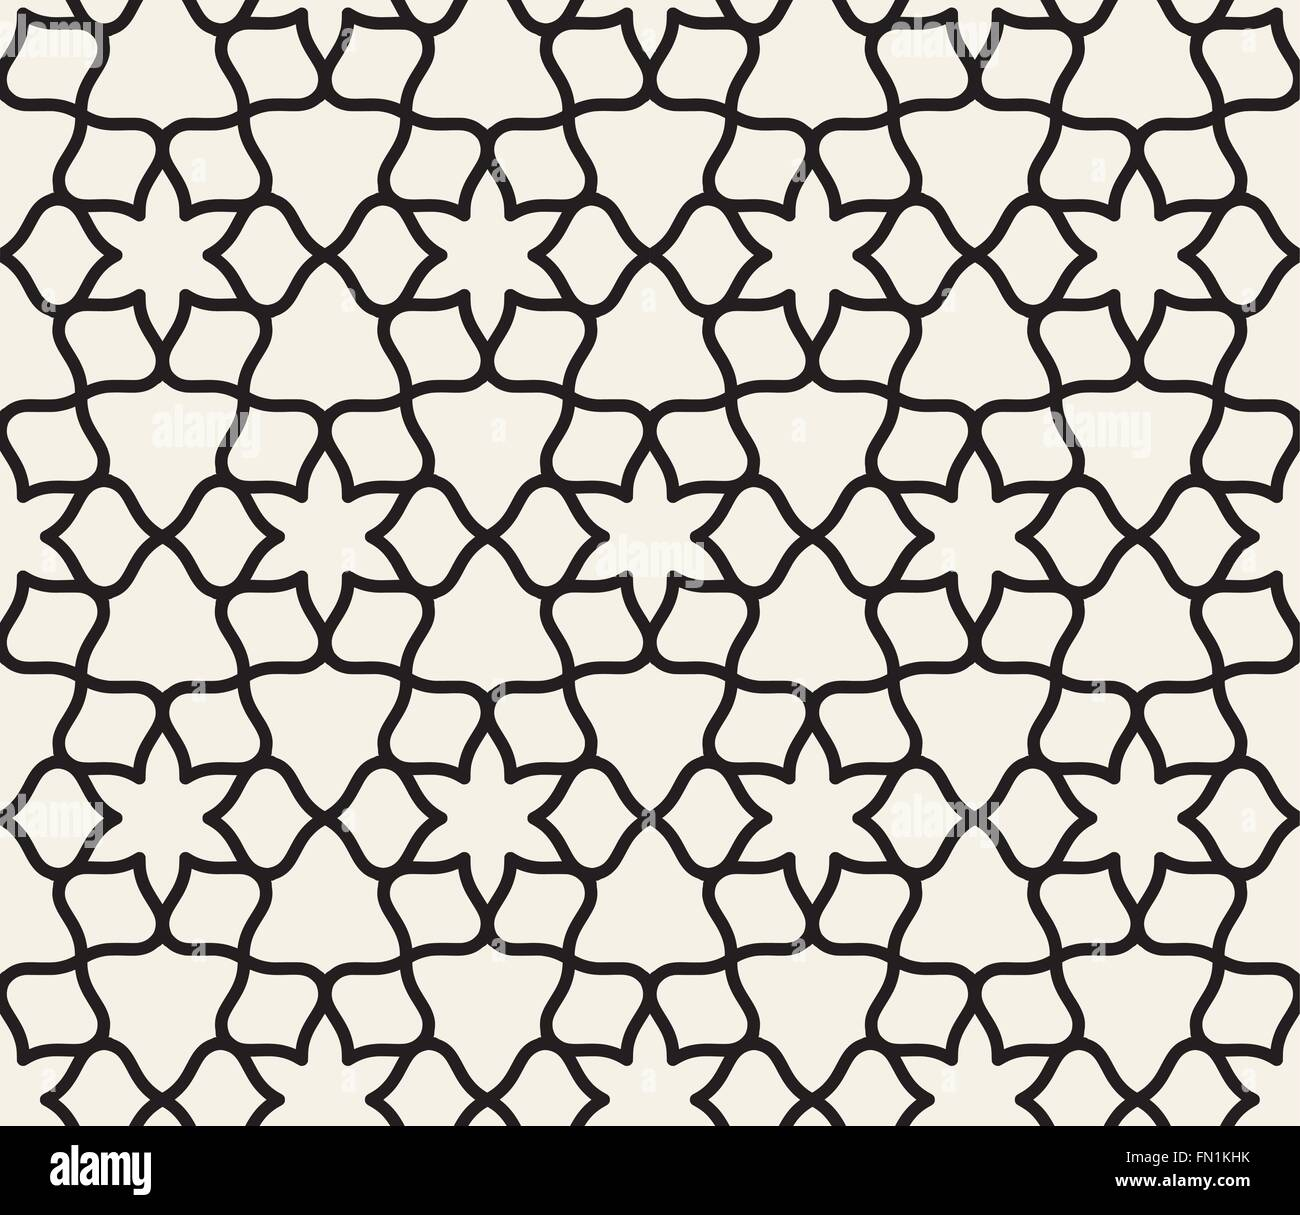 Islamic seamless pattern vectors - Stock Image